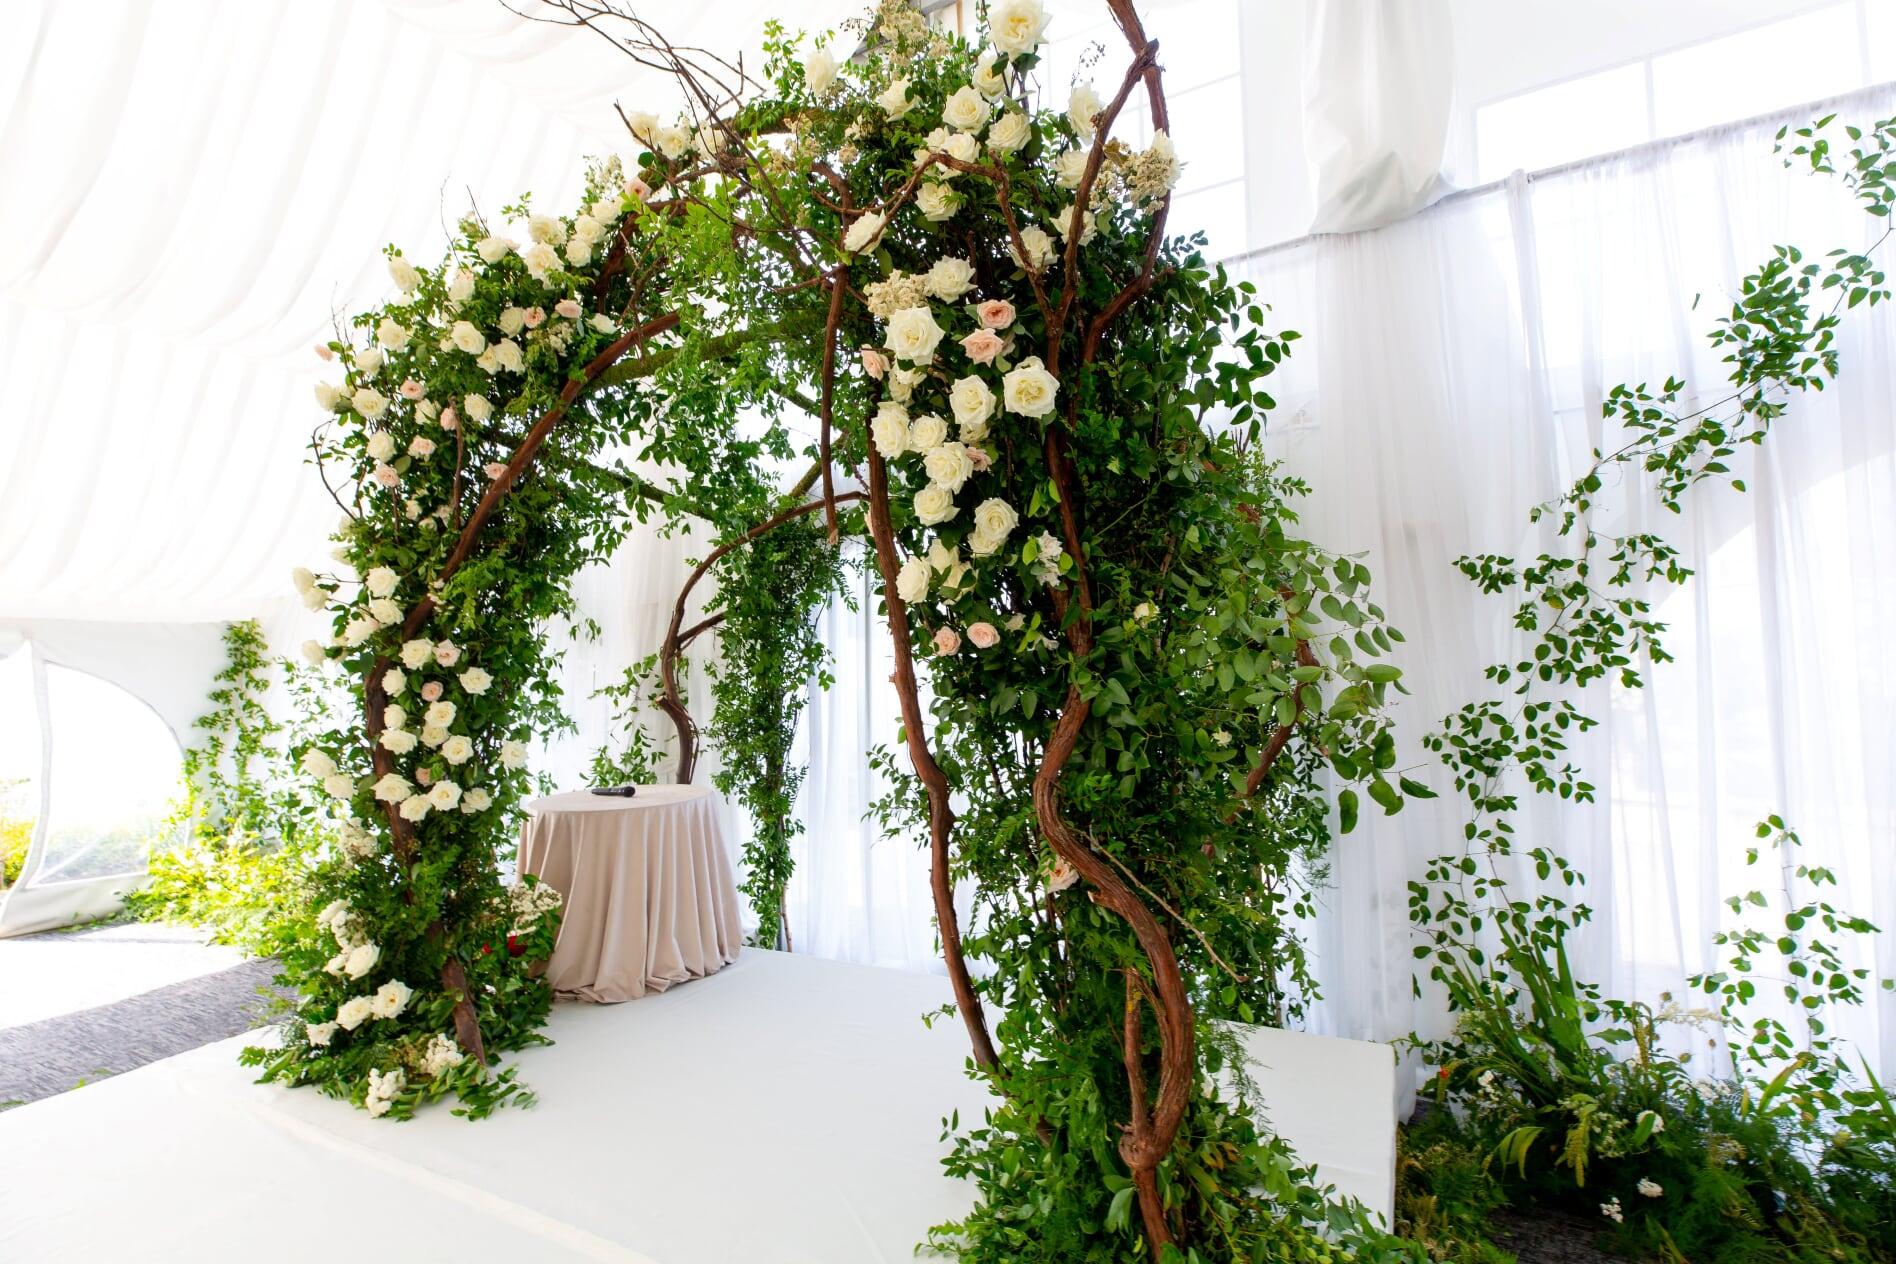 Grapevine ceremony arch with greenery and roses in this midsummer night's dream wedding